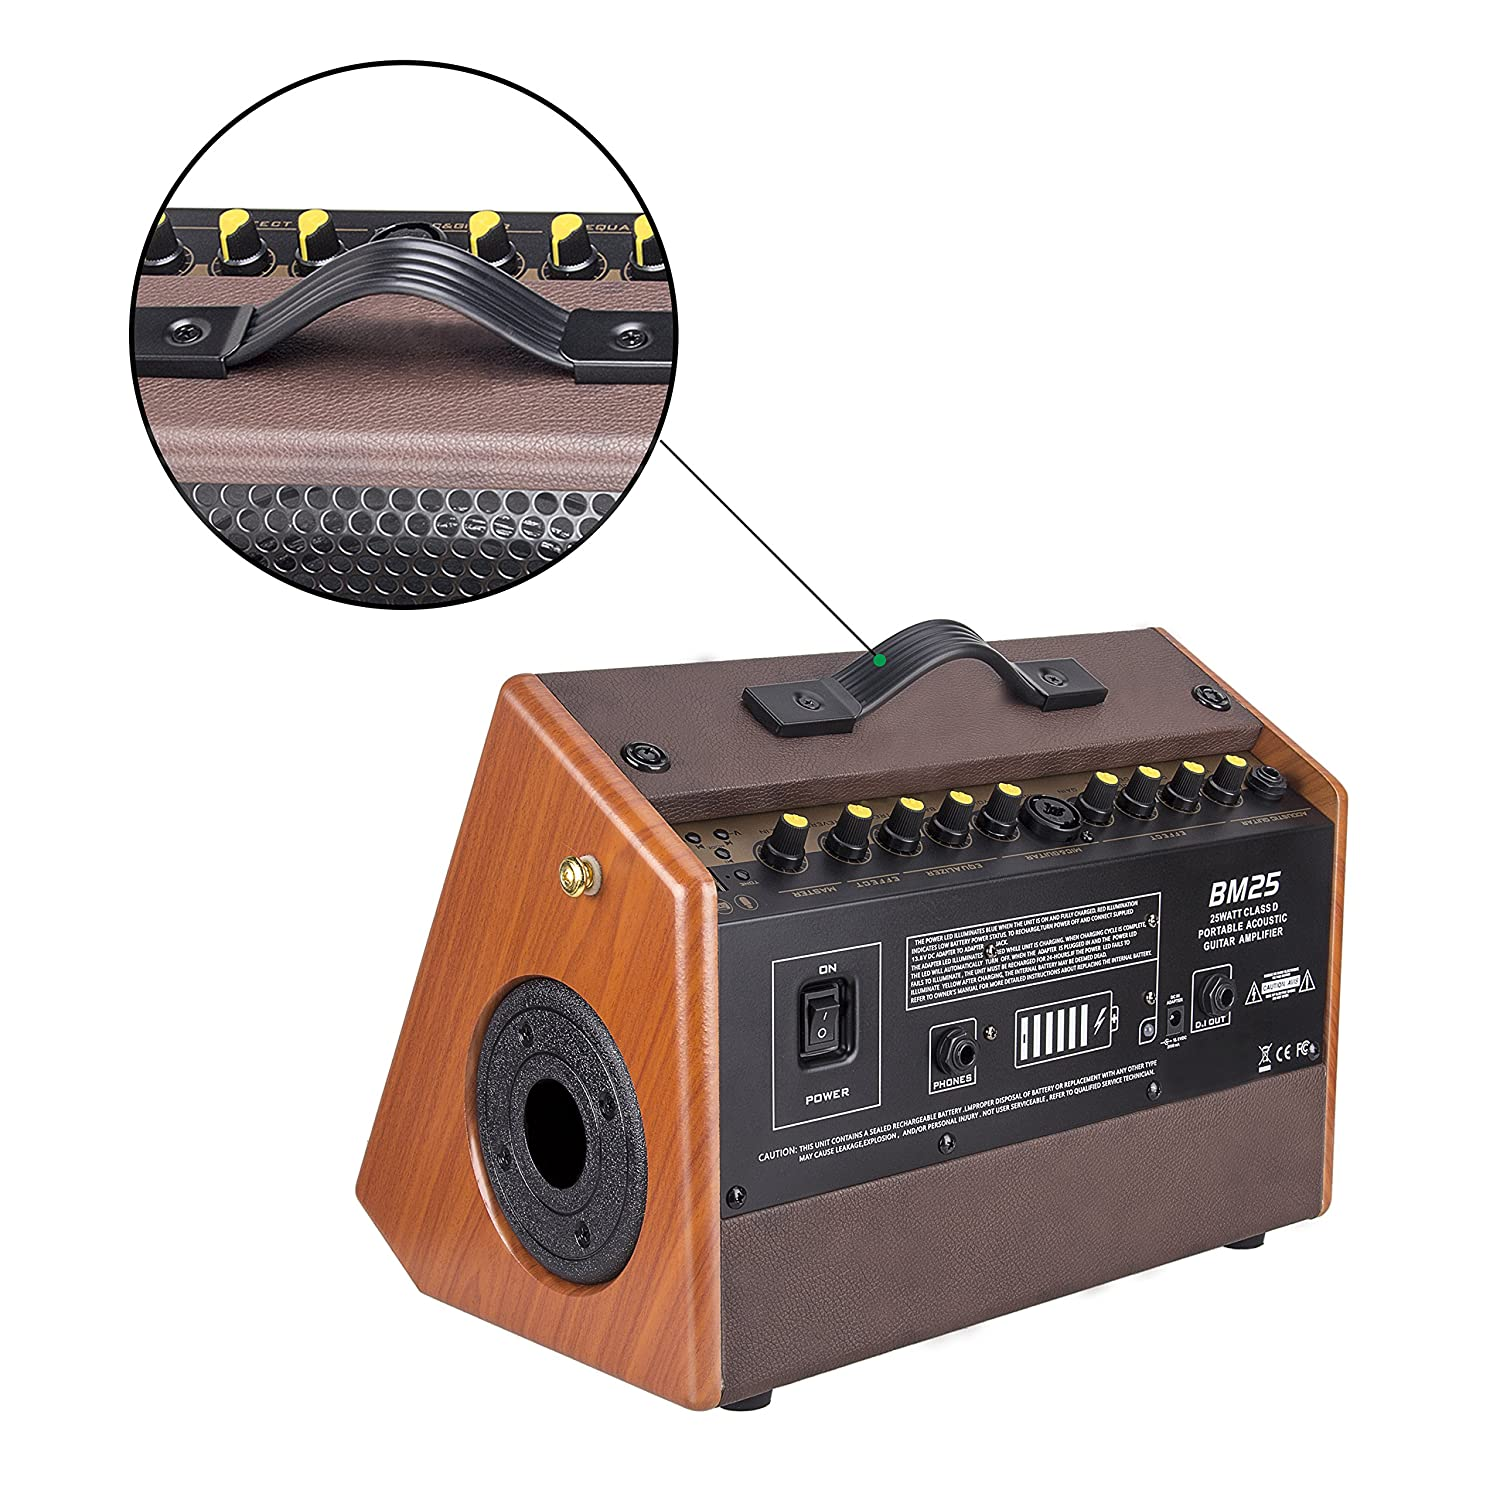 Mugig Guitar Amplifier Rechargeable Speaker Works With Voltage Limiter For Amplifiers Acoustic And Electric Voice Karaoke 25w Musical Instruments